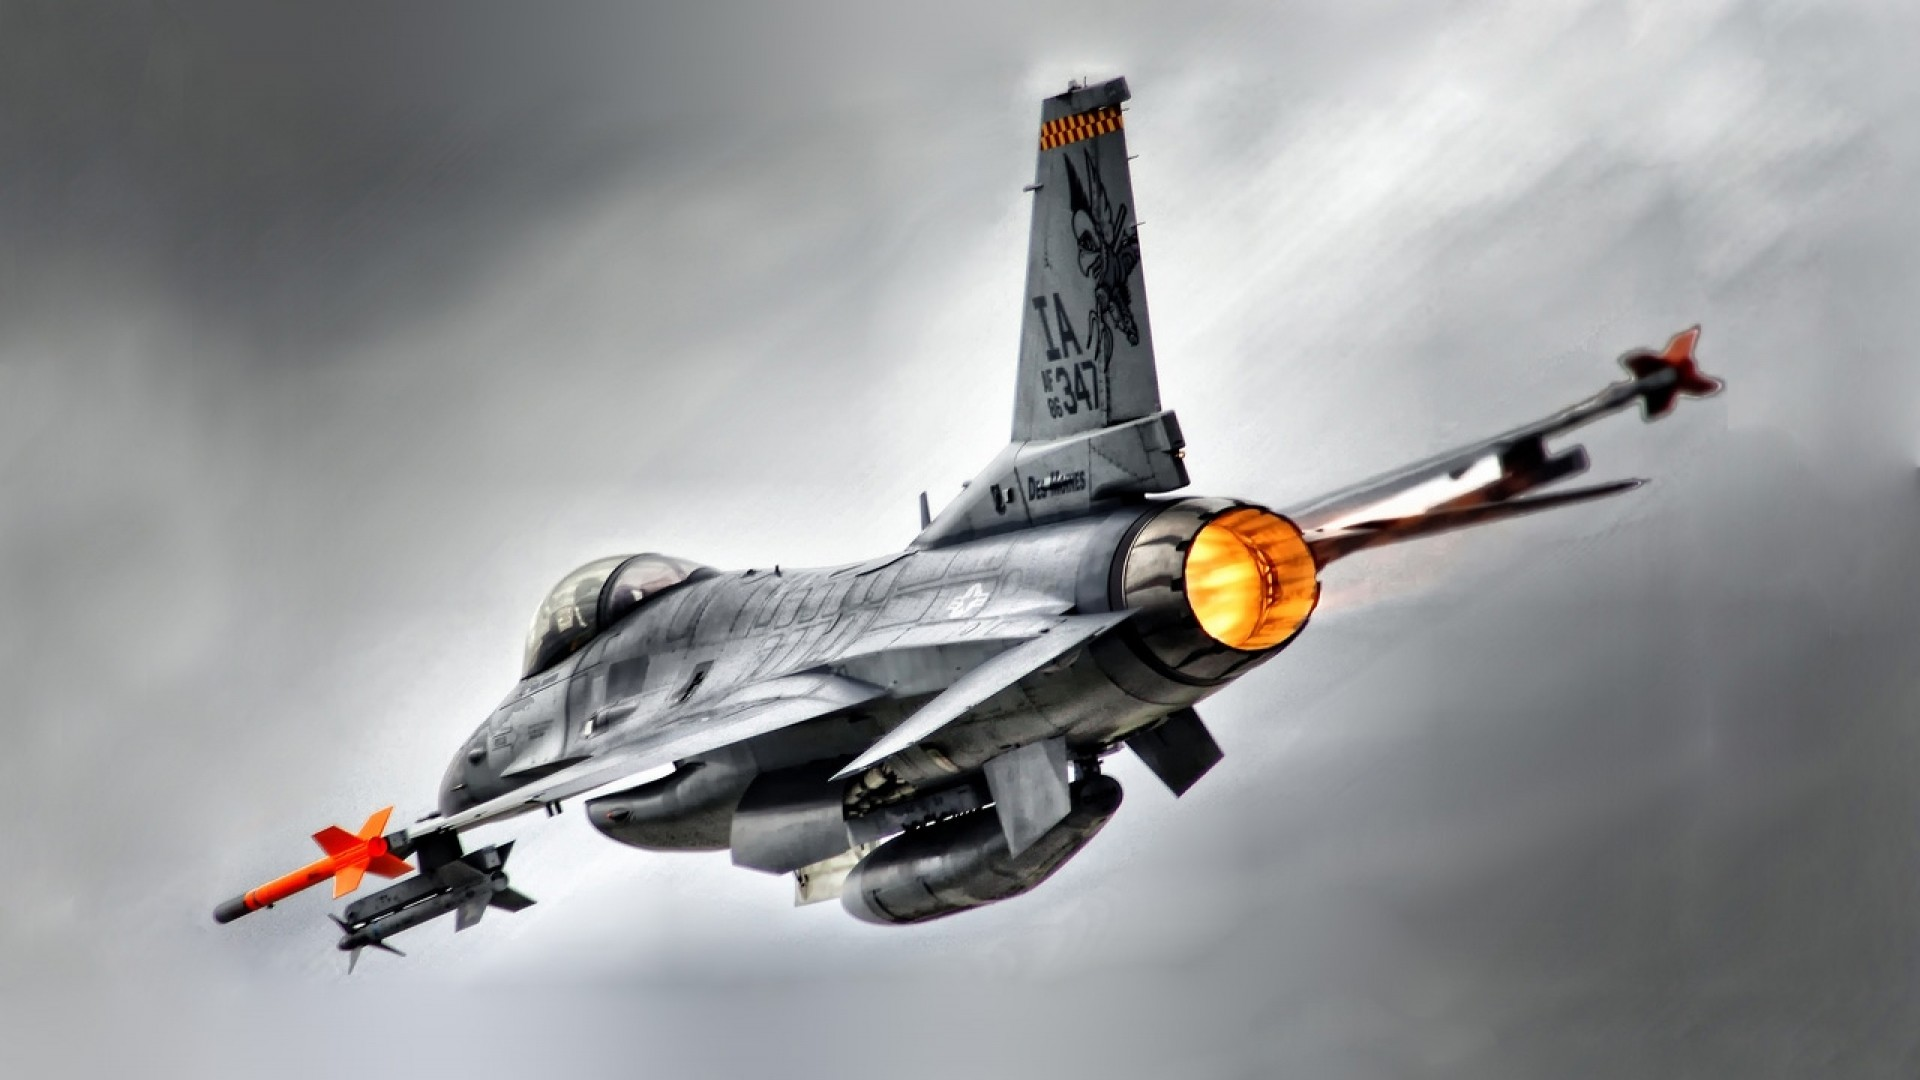 1920x1080 F16 Picture On Wallpaper Hd 1920 x 1080 px 623.08 KB f 16 f22 raptor cockpit